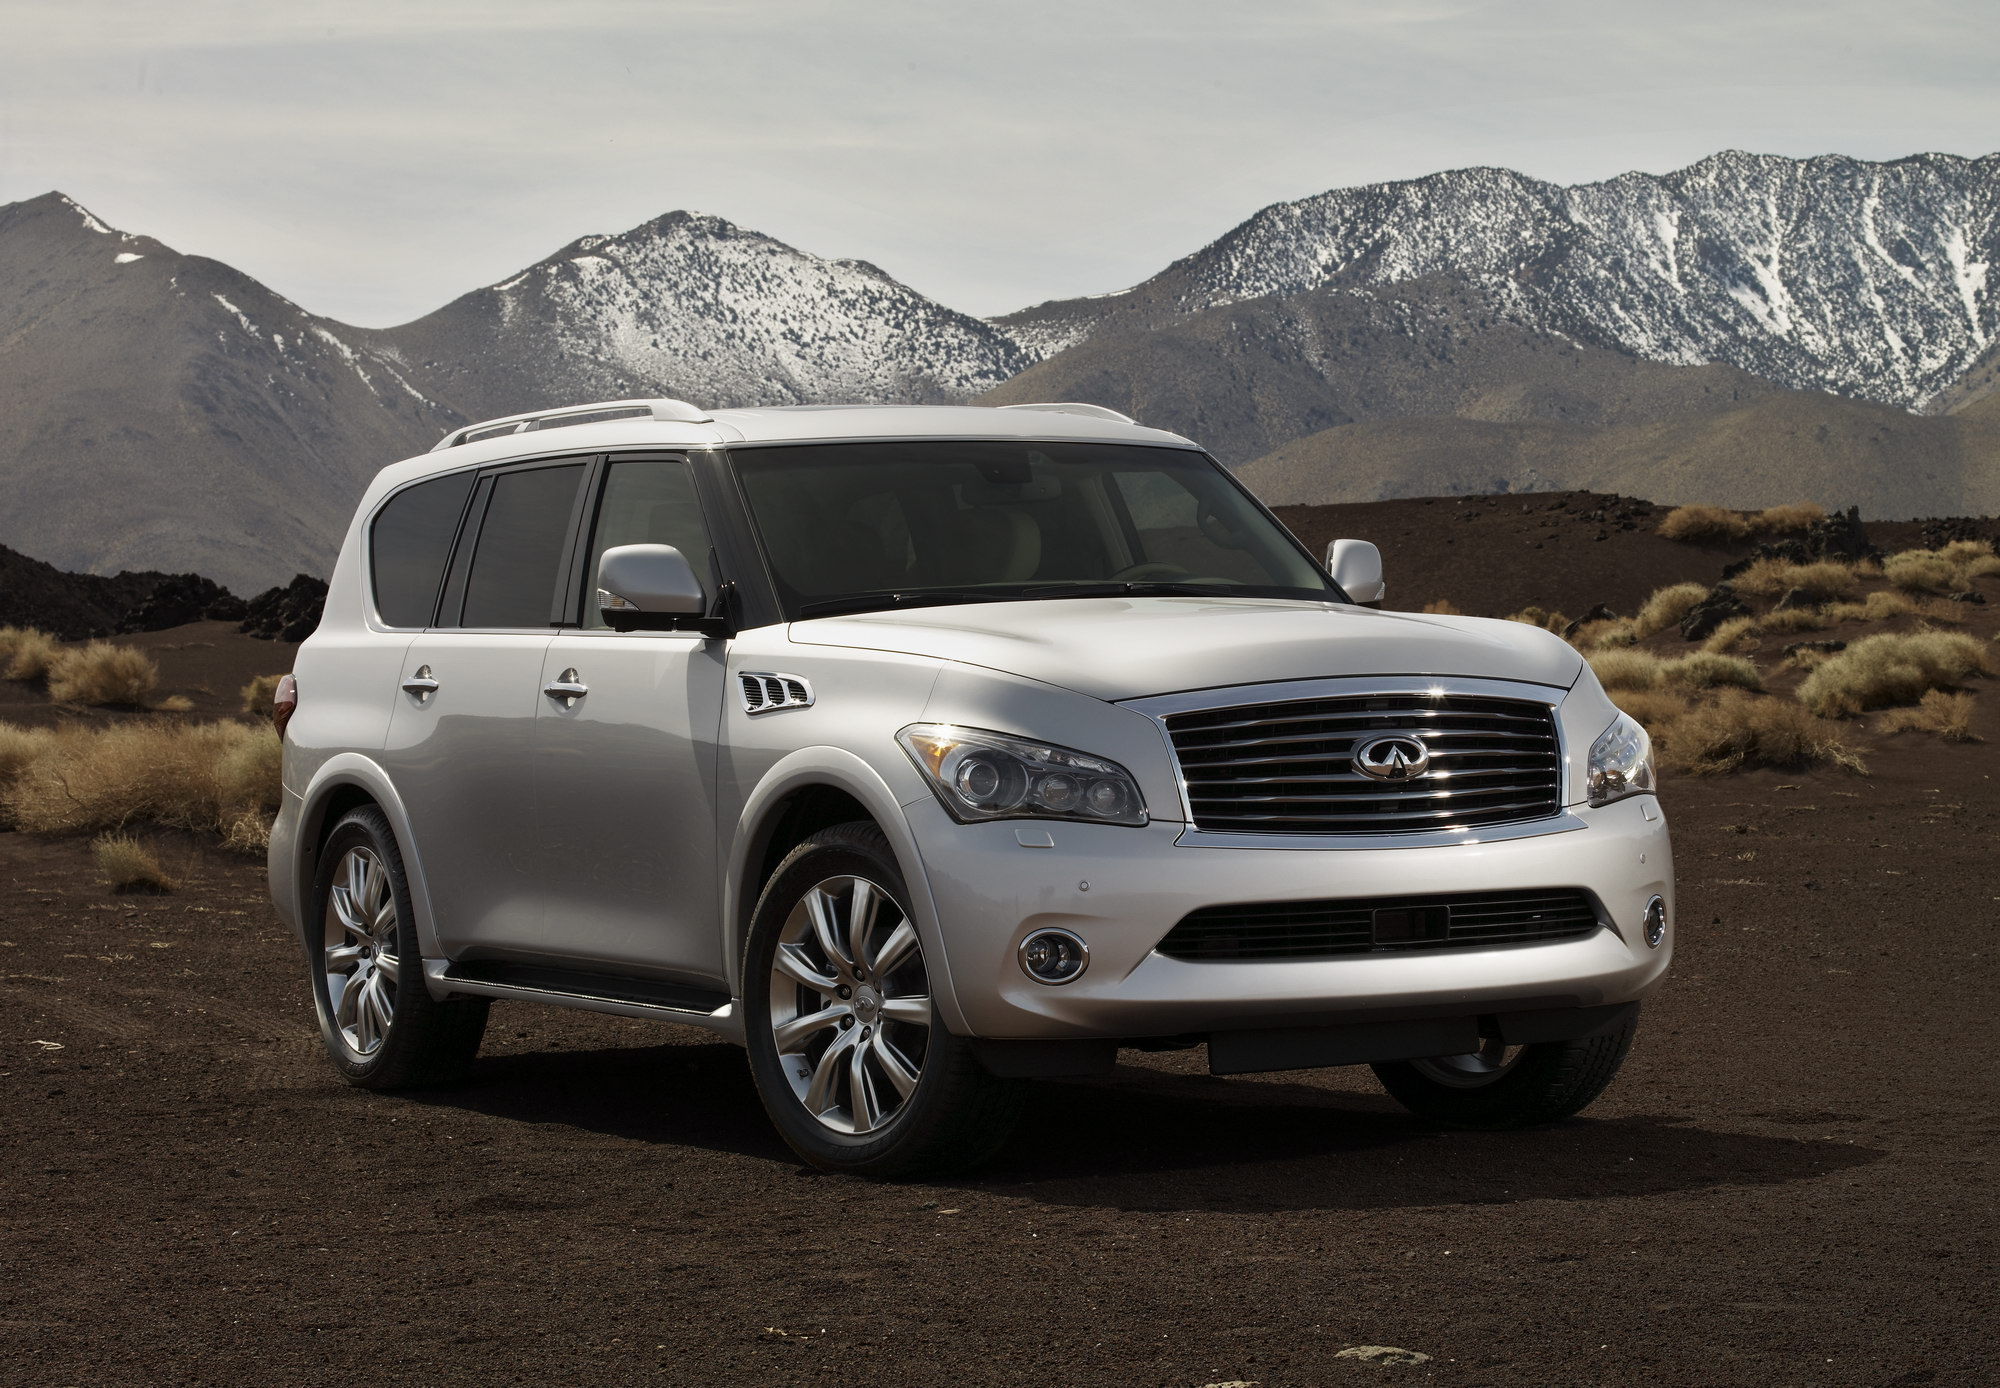 gallery infinity design cars suv cabinsa infiniti with for on ideas hd cool